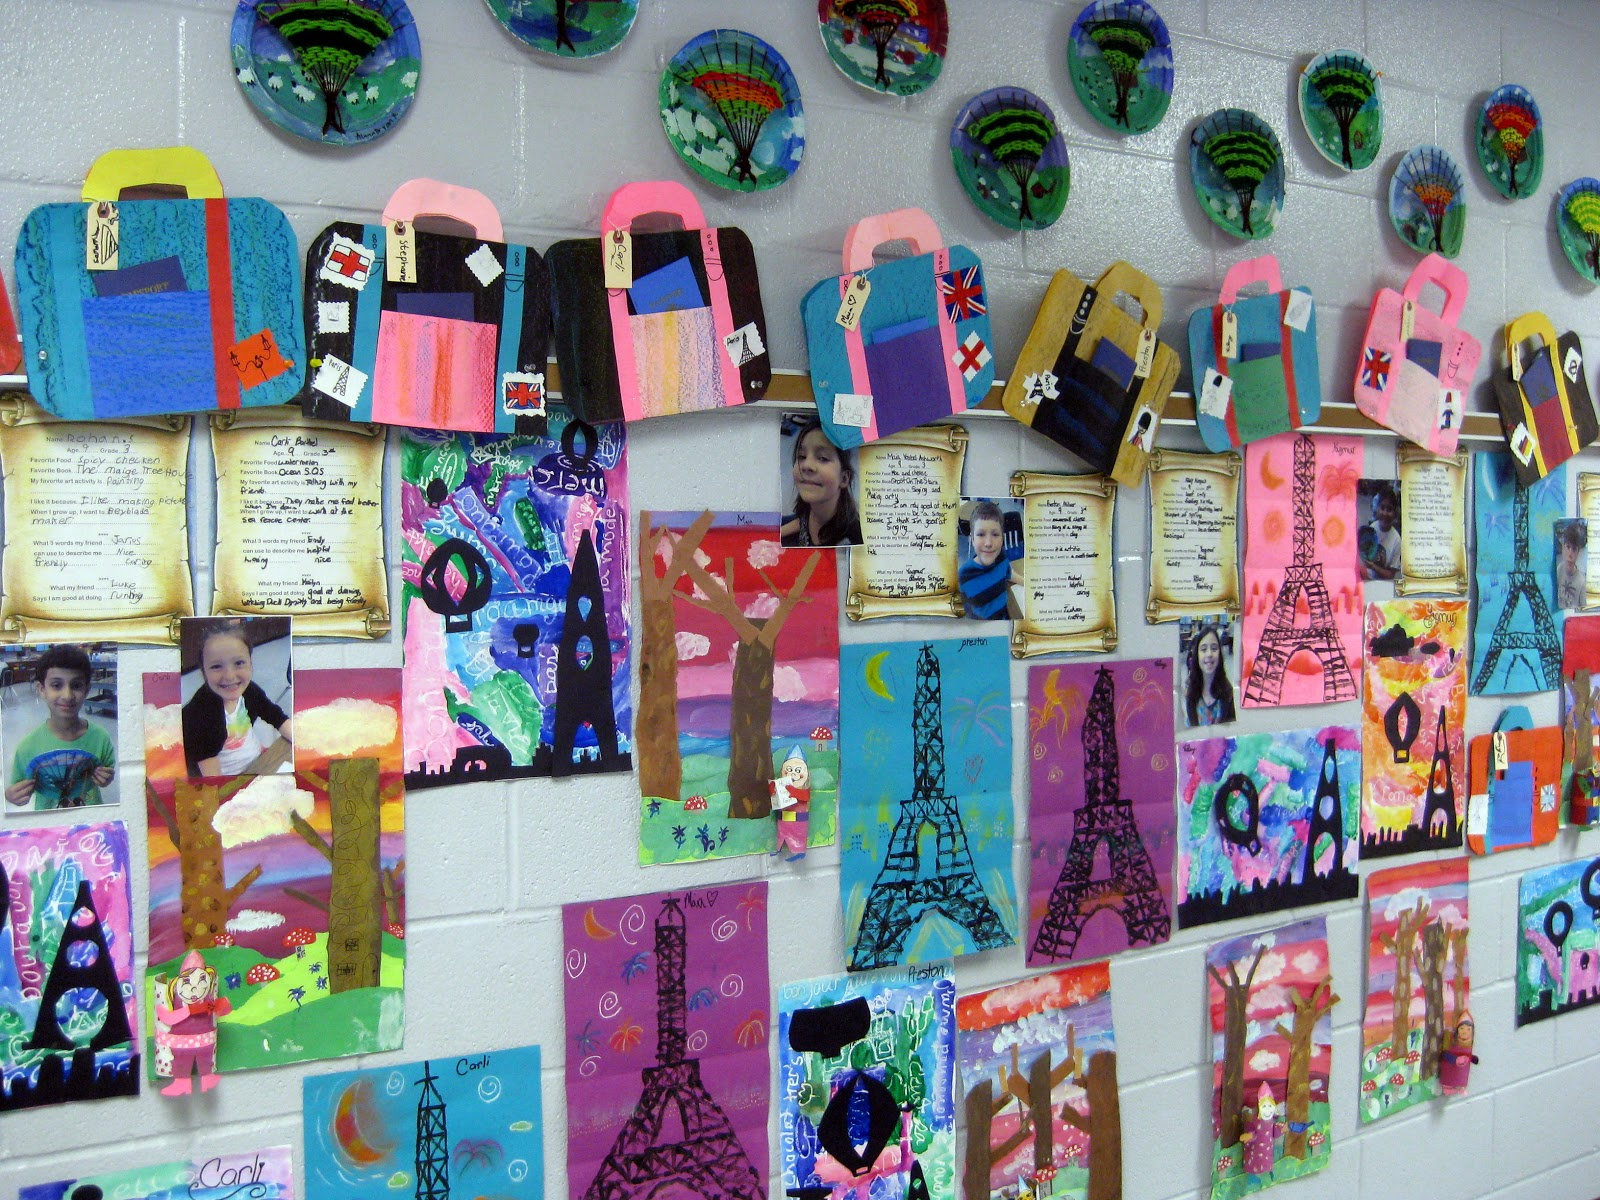 Cassie stephens art projects for fourth graders for Art craft shows